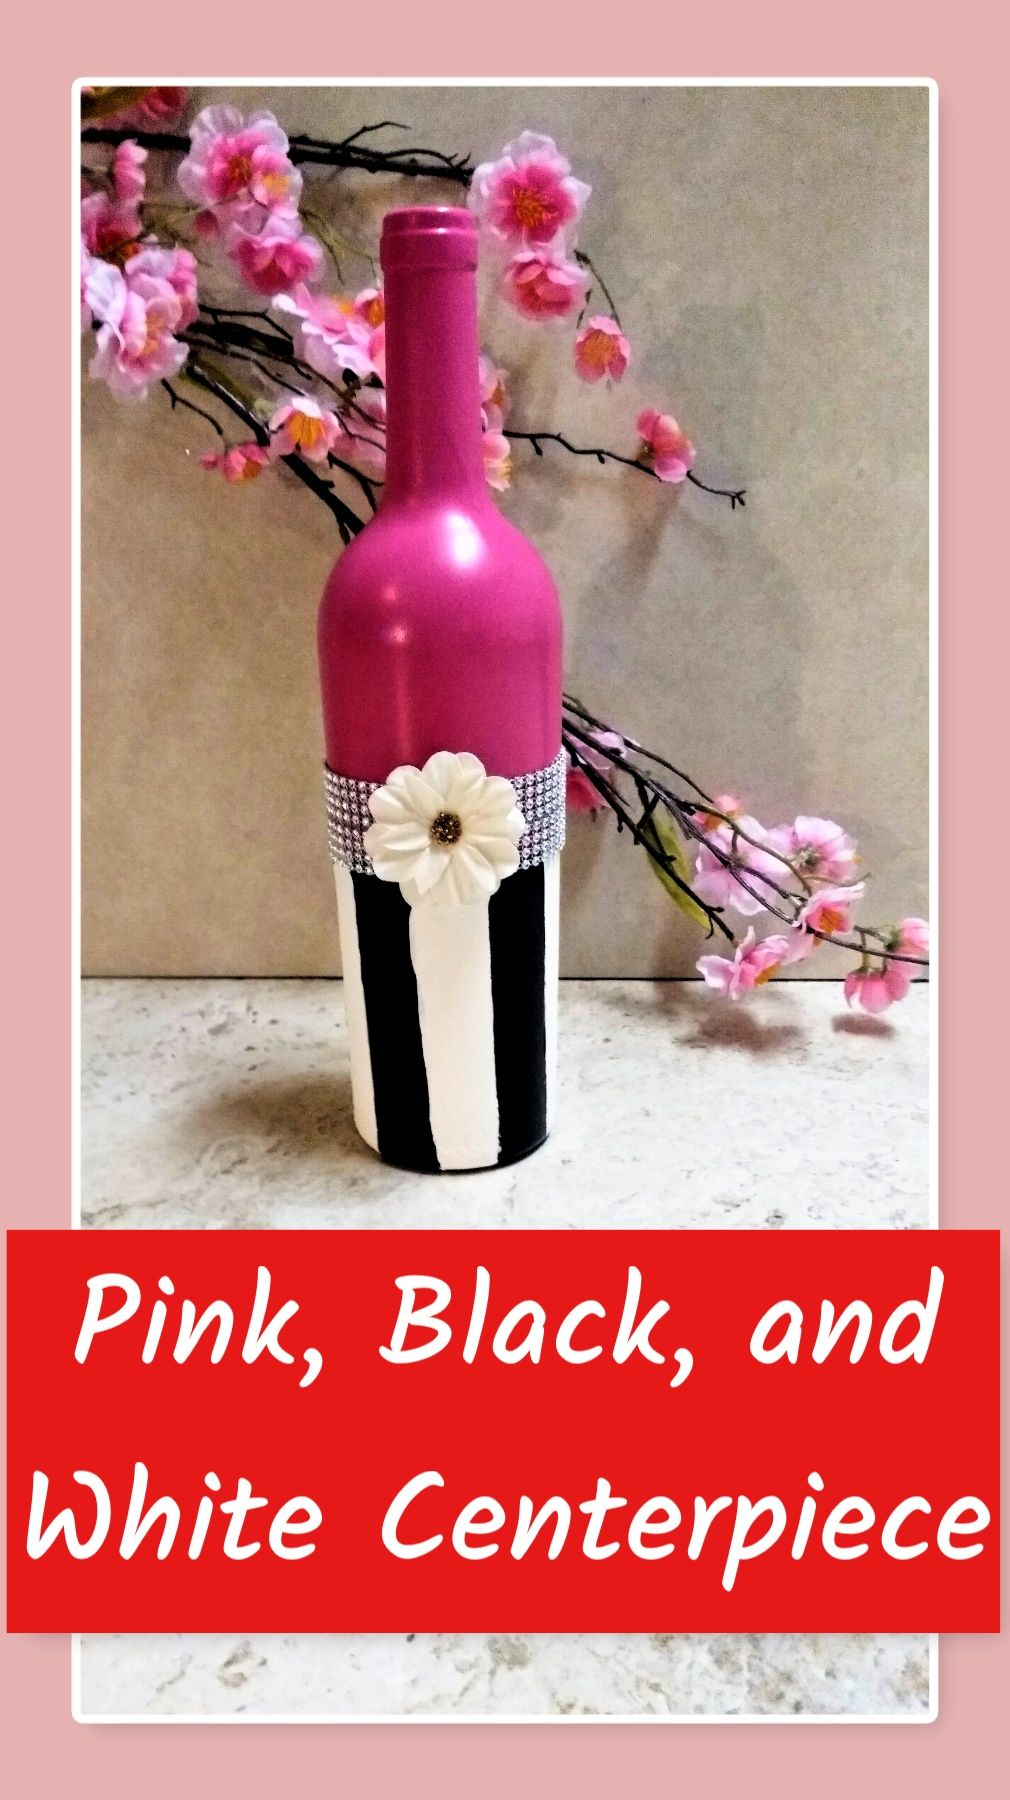 Jazzy And Sassy Decor With This Girly Girl S Decor From Birthday Parties Or Baby Showers Baby Shower Centerpieces Baby Shower Decorations Painted Wine Bottles